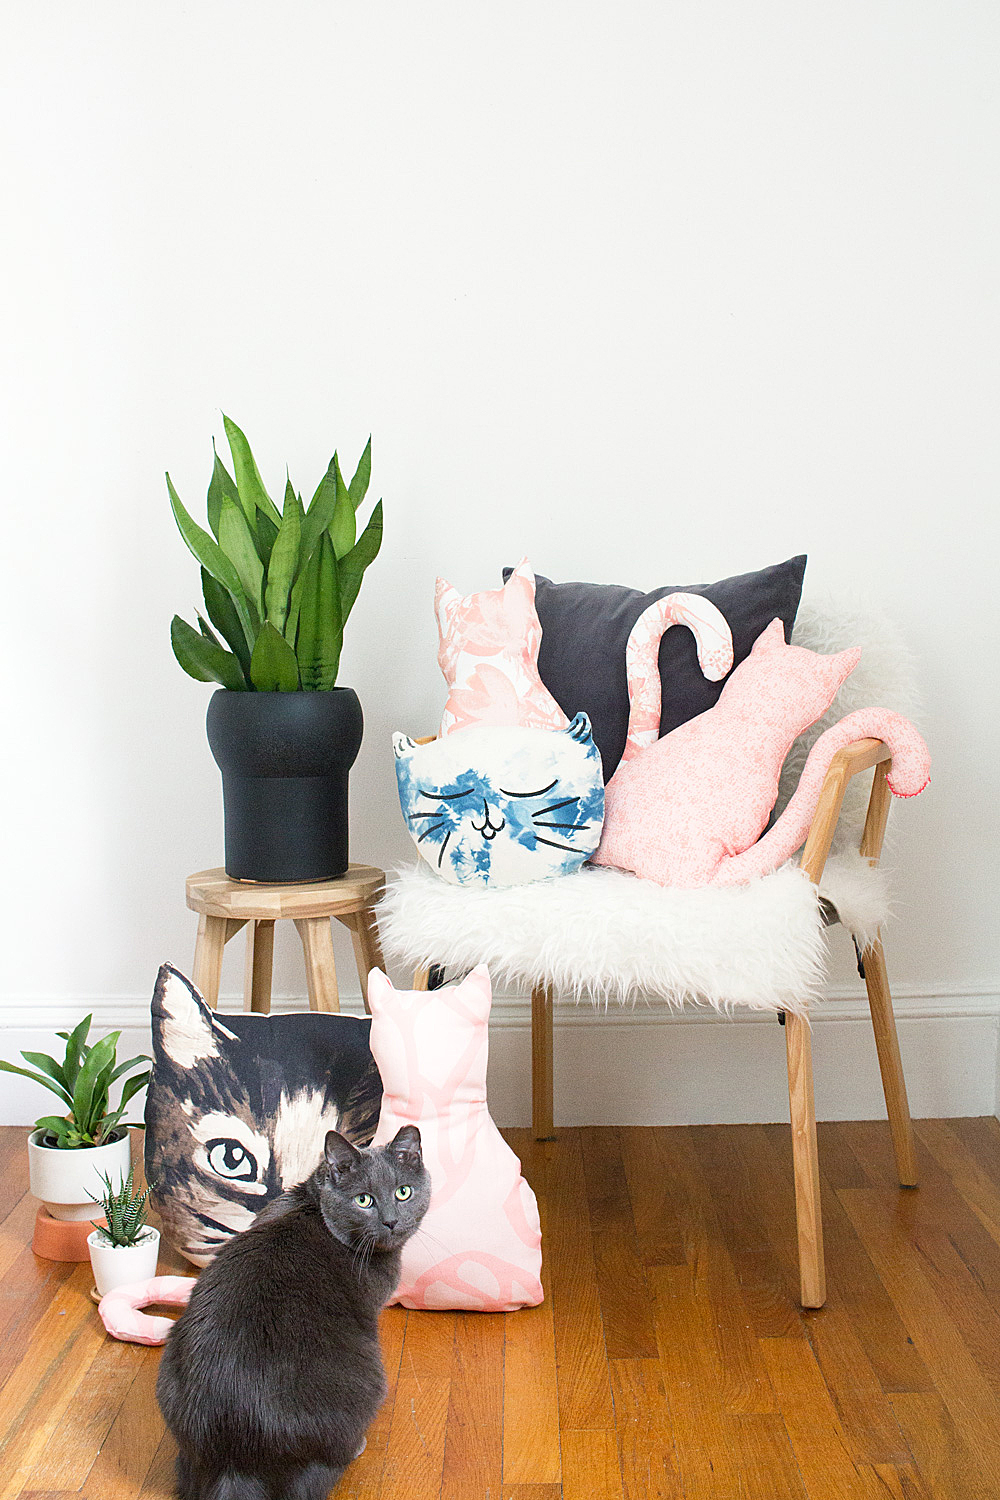 DIY No-Sew Cat Pillow @idlehandsawake